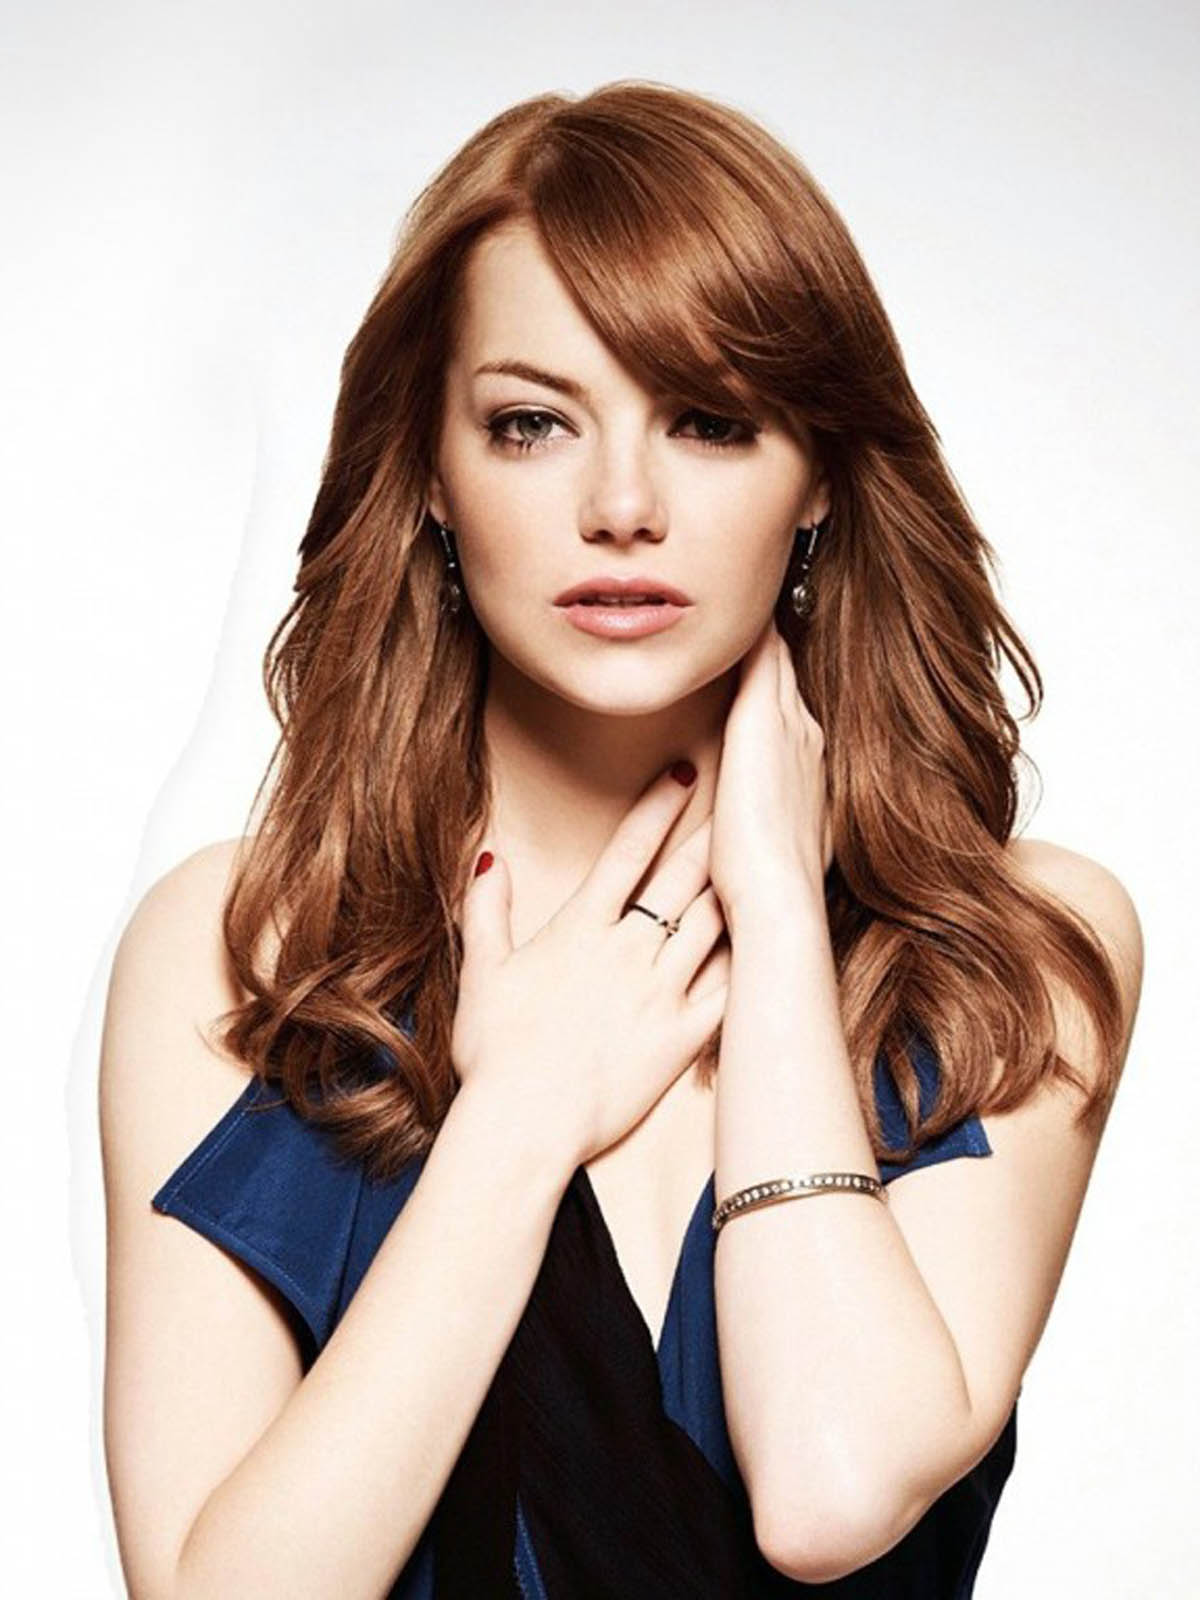 Emma-Stone-Smiley-Wallpapers-1